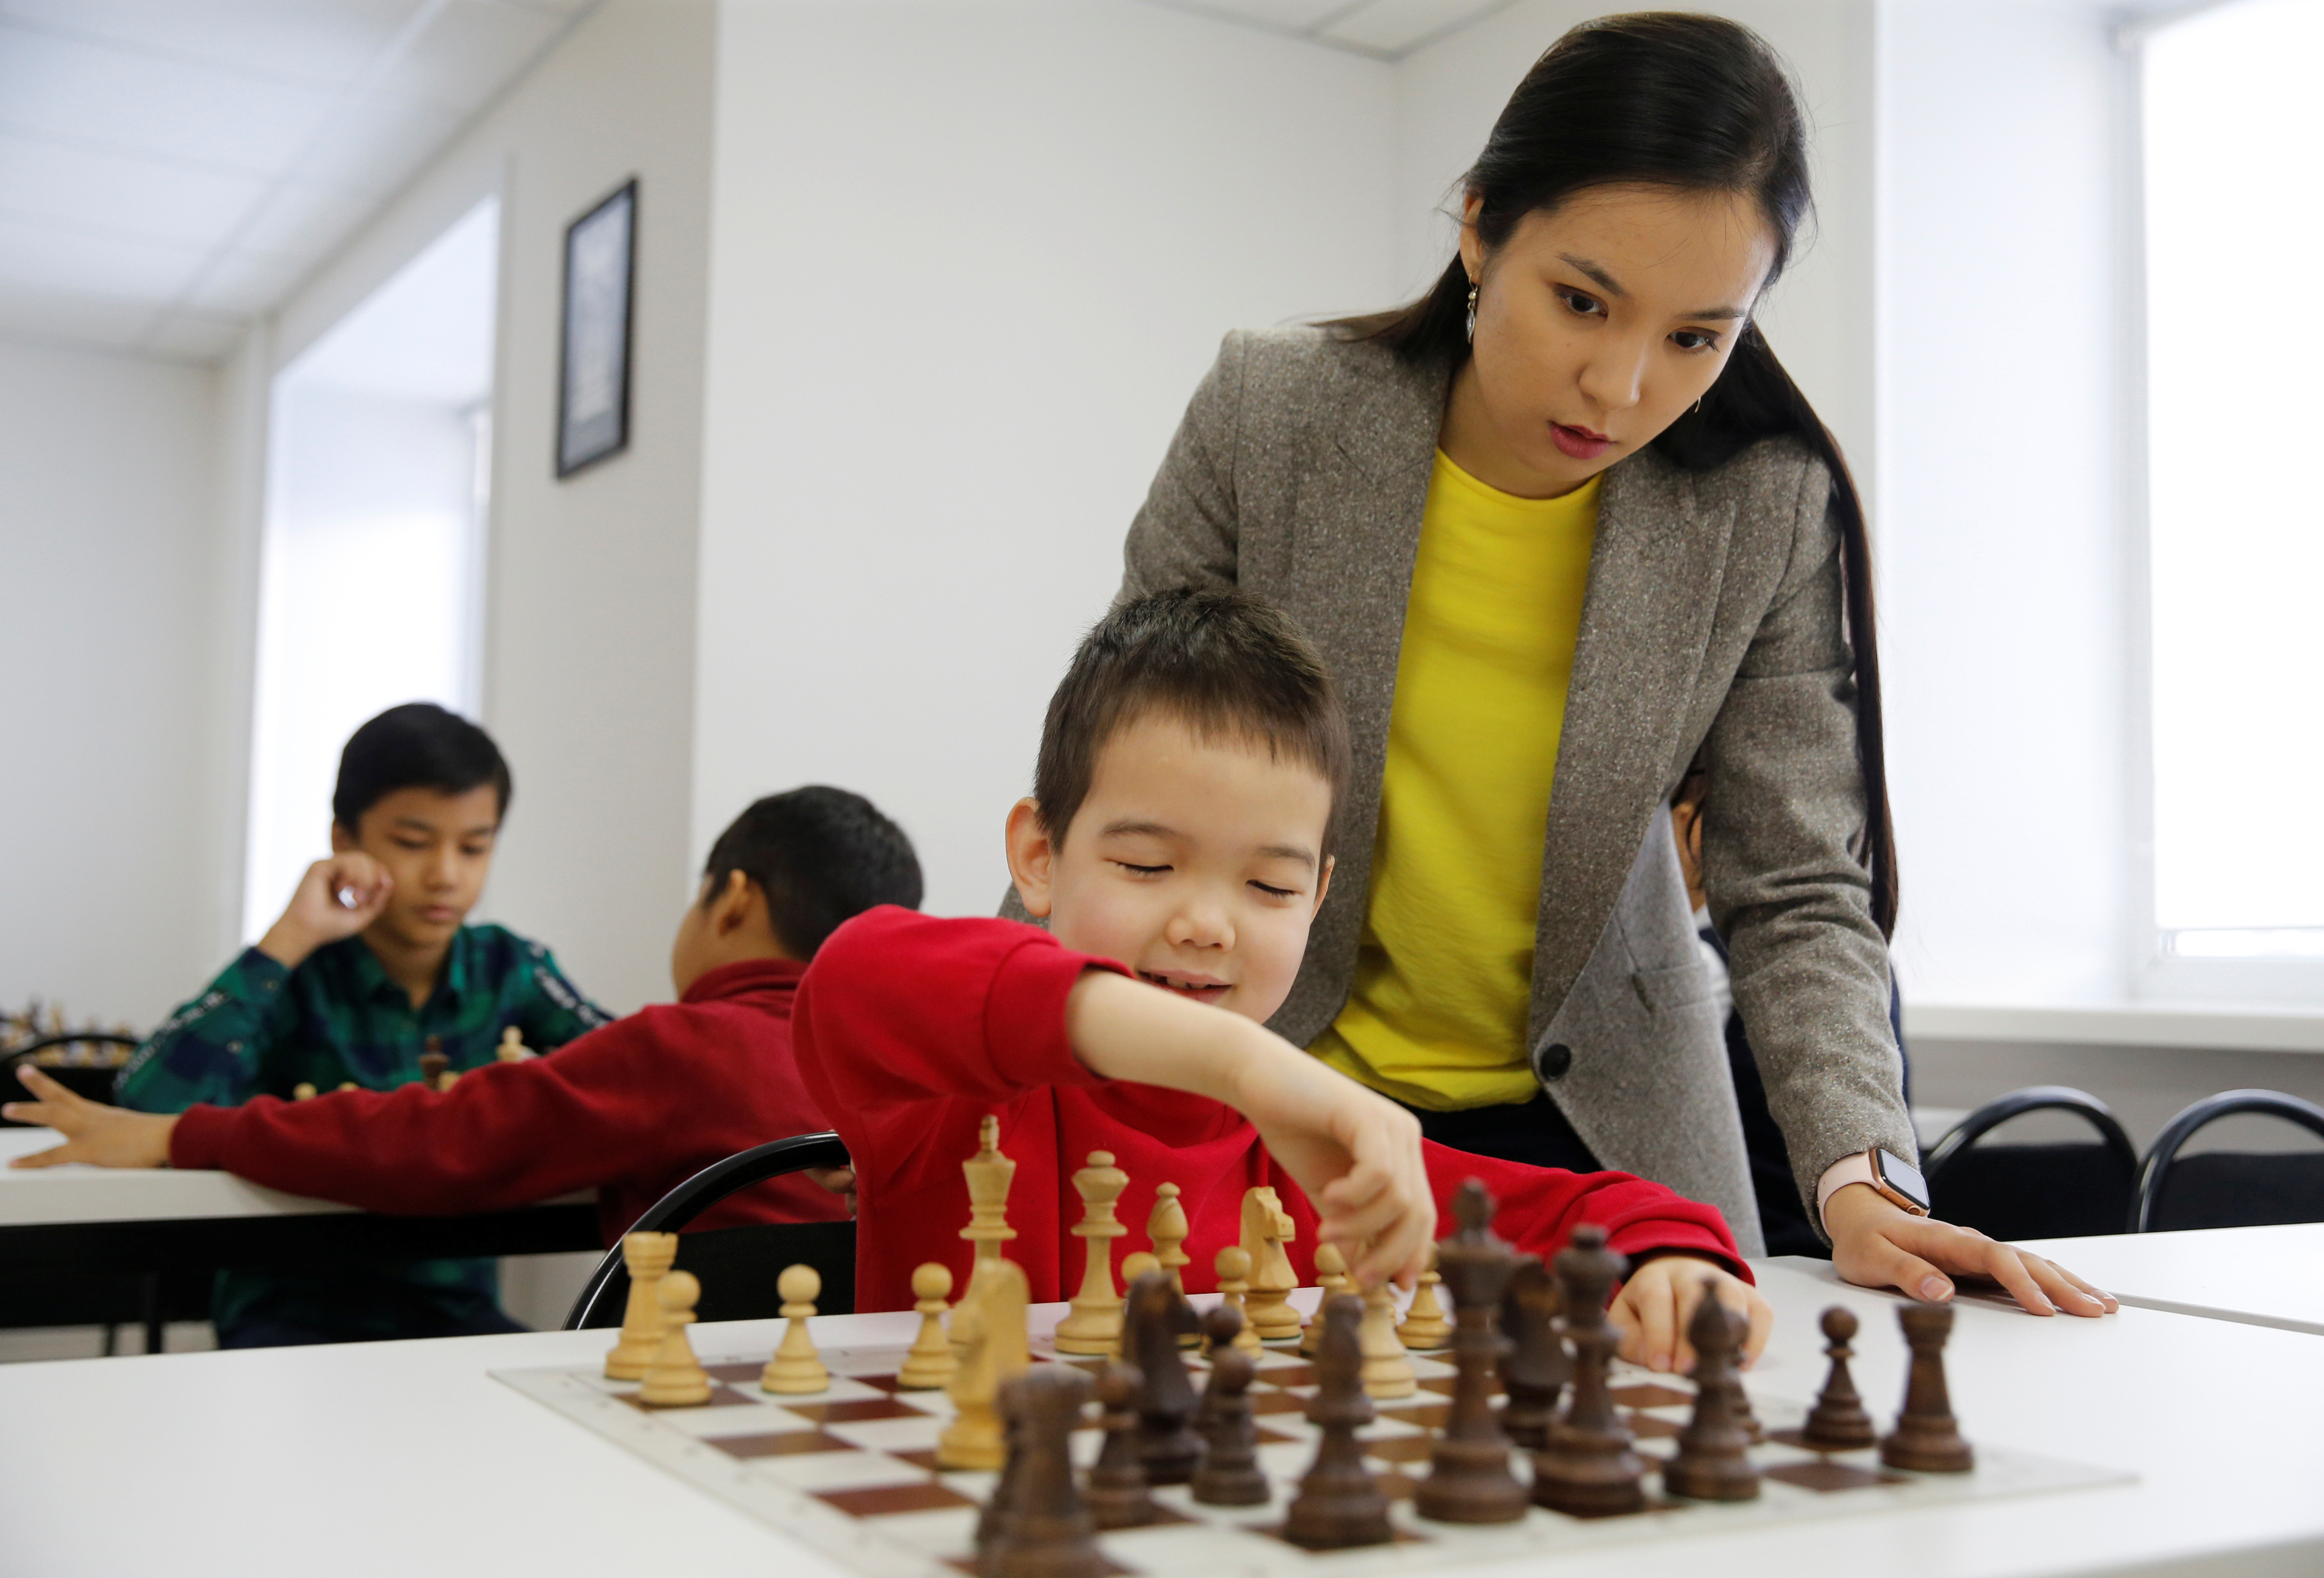 Dinara Saduakassova, a 23-year-old Kazakh chess player and social activist, teaches children in the Chess Academy she founded in Nur-Sultan, Kazakhstan March 3, 2020. Saduakassova has opened a chain of chess schools in the country and has become a Goodwill Ambassador of the UNICEF. Picture taken March 3, 2020. REUTERS/Pavel Mikheyev - RC2ODF99KN3U